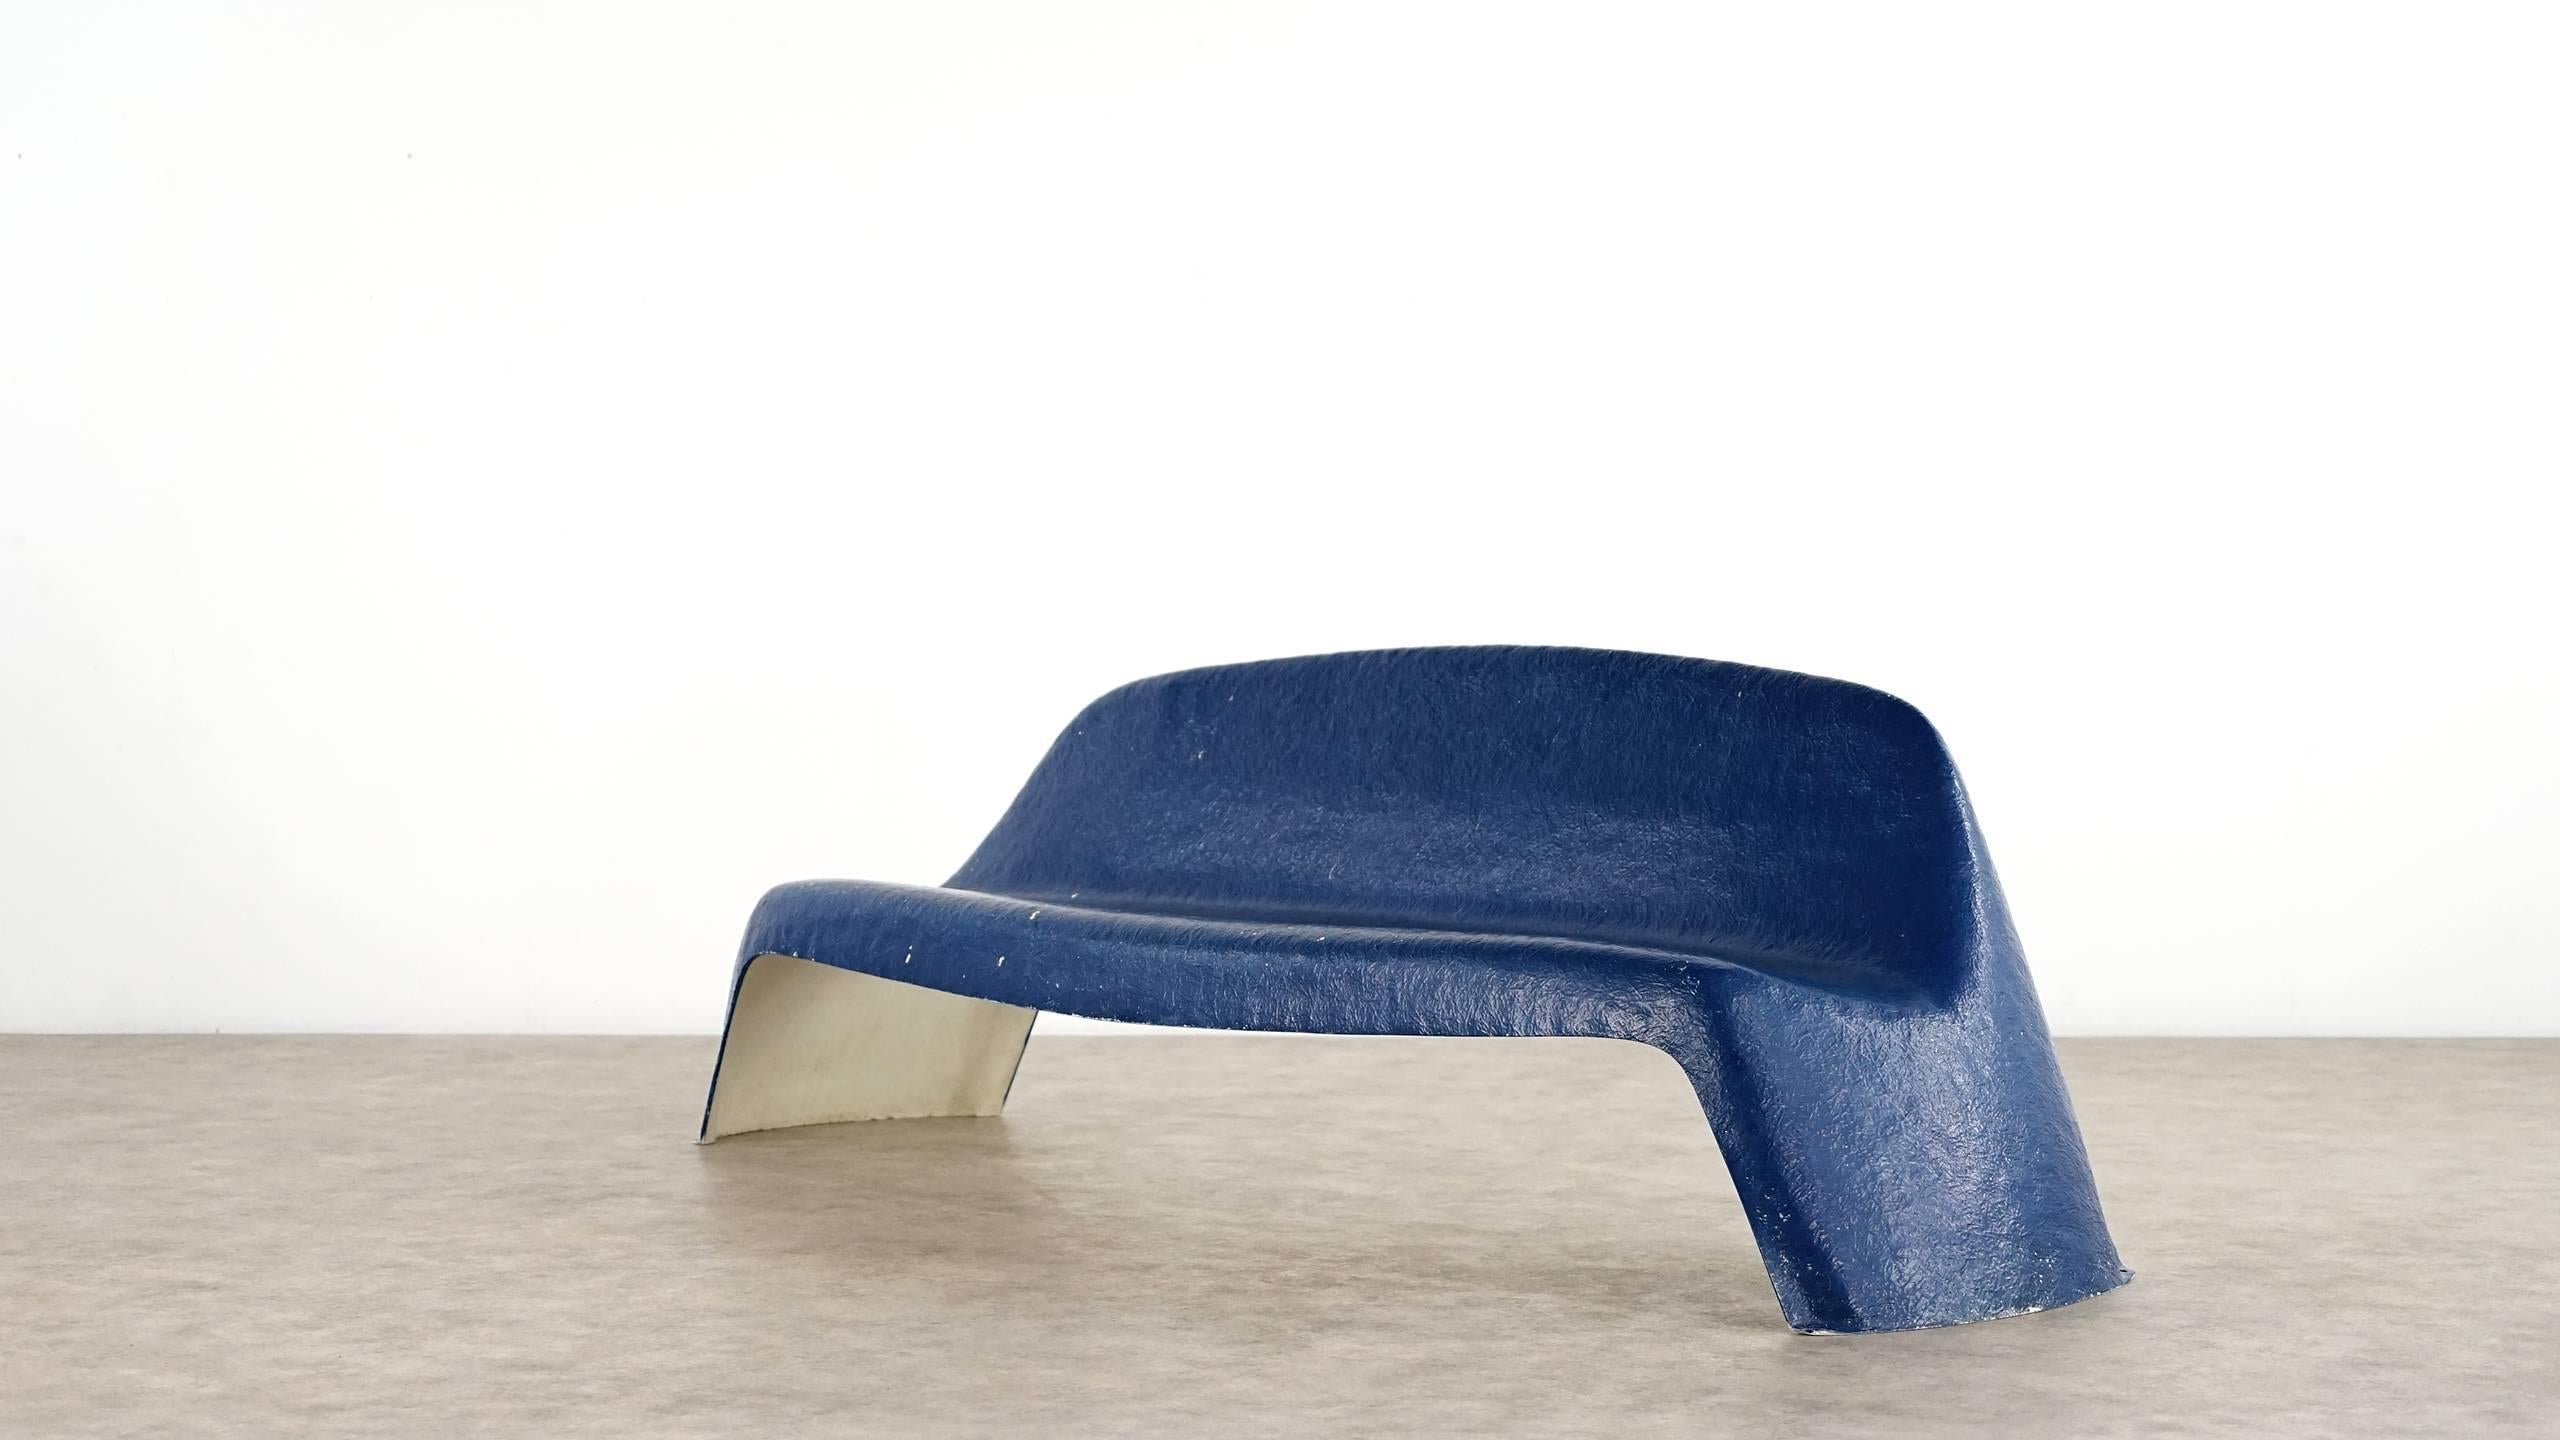 Walter Knoll Bureaustoel.Walter Papst Bench 1967 For Wilkhahn Germany Inside Out